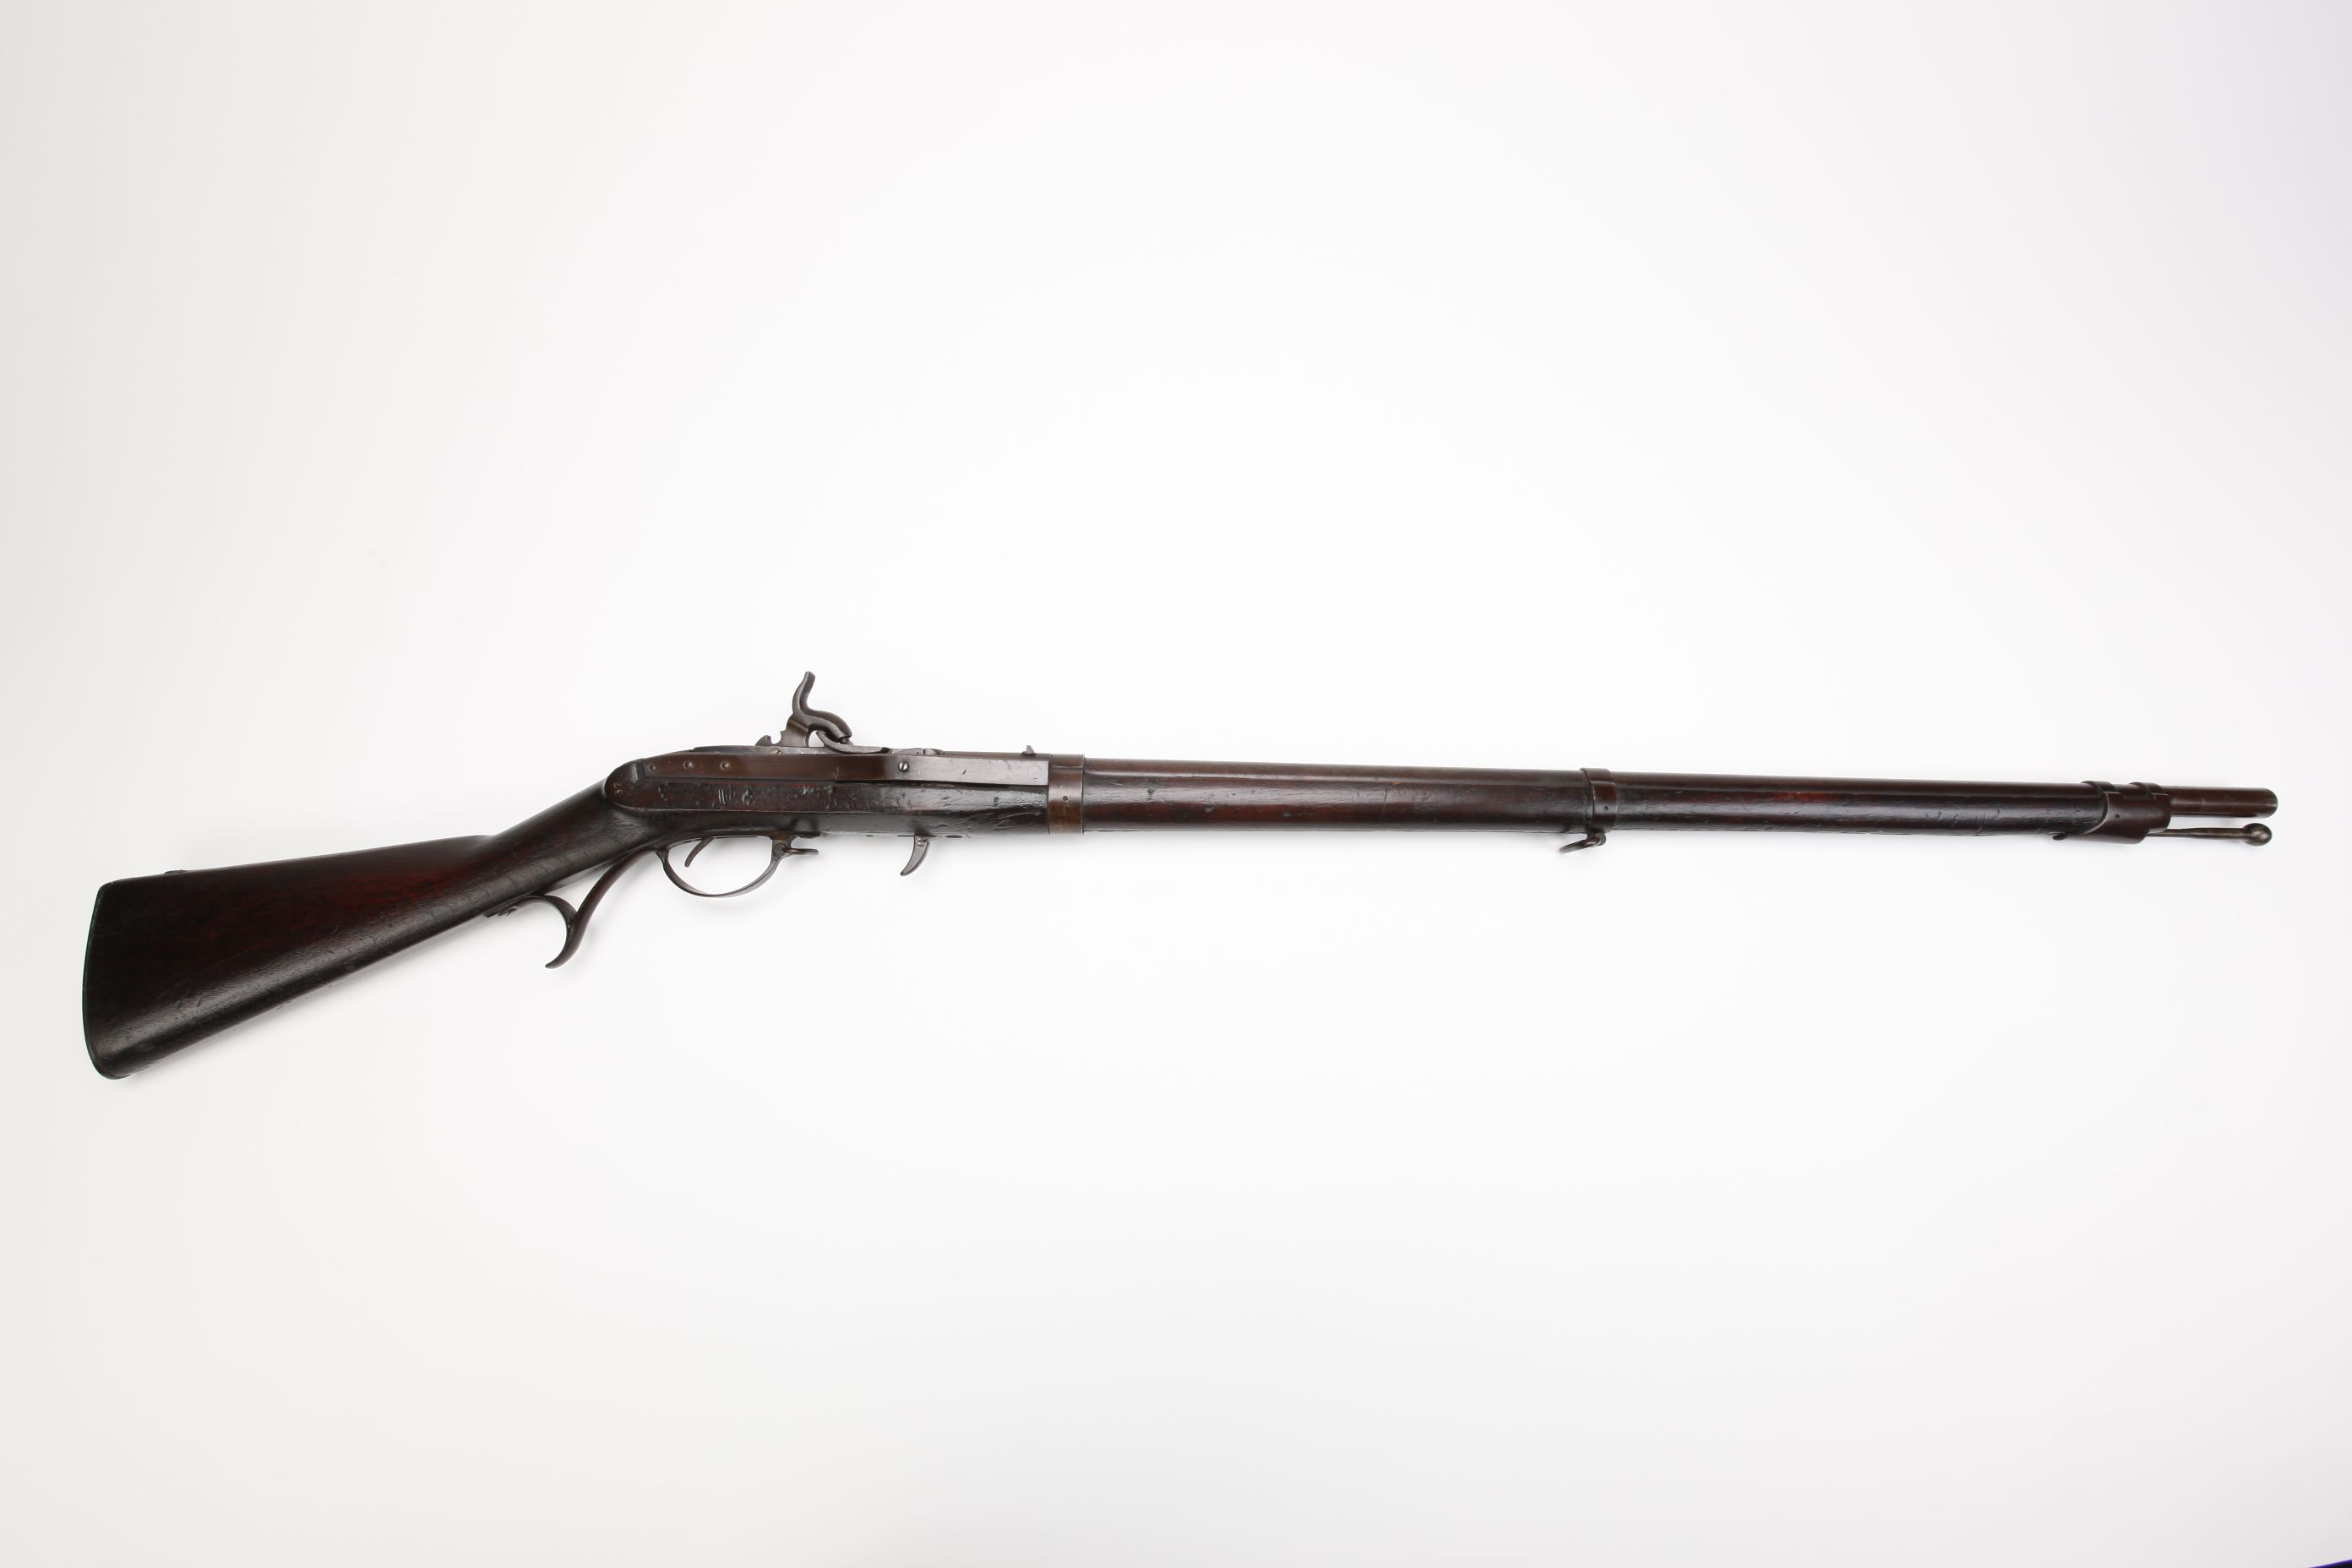 U.S. Hall Model 1819 Breechloading Percussion Rifle